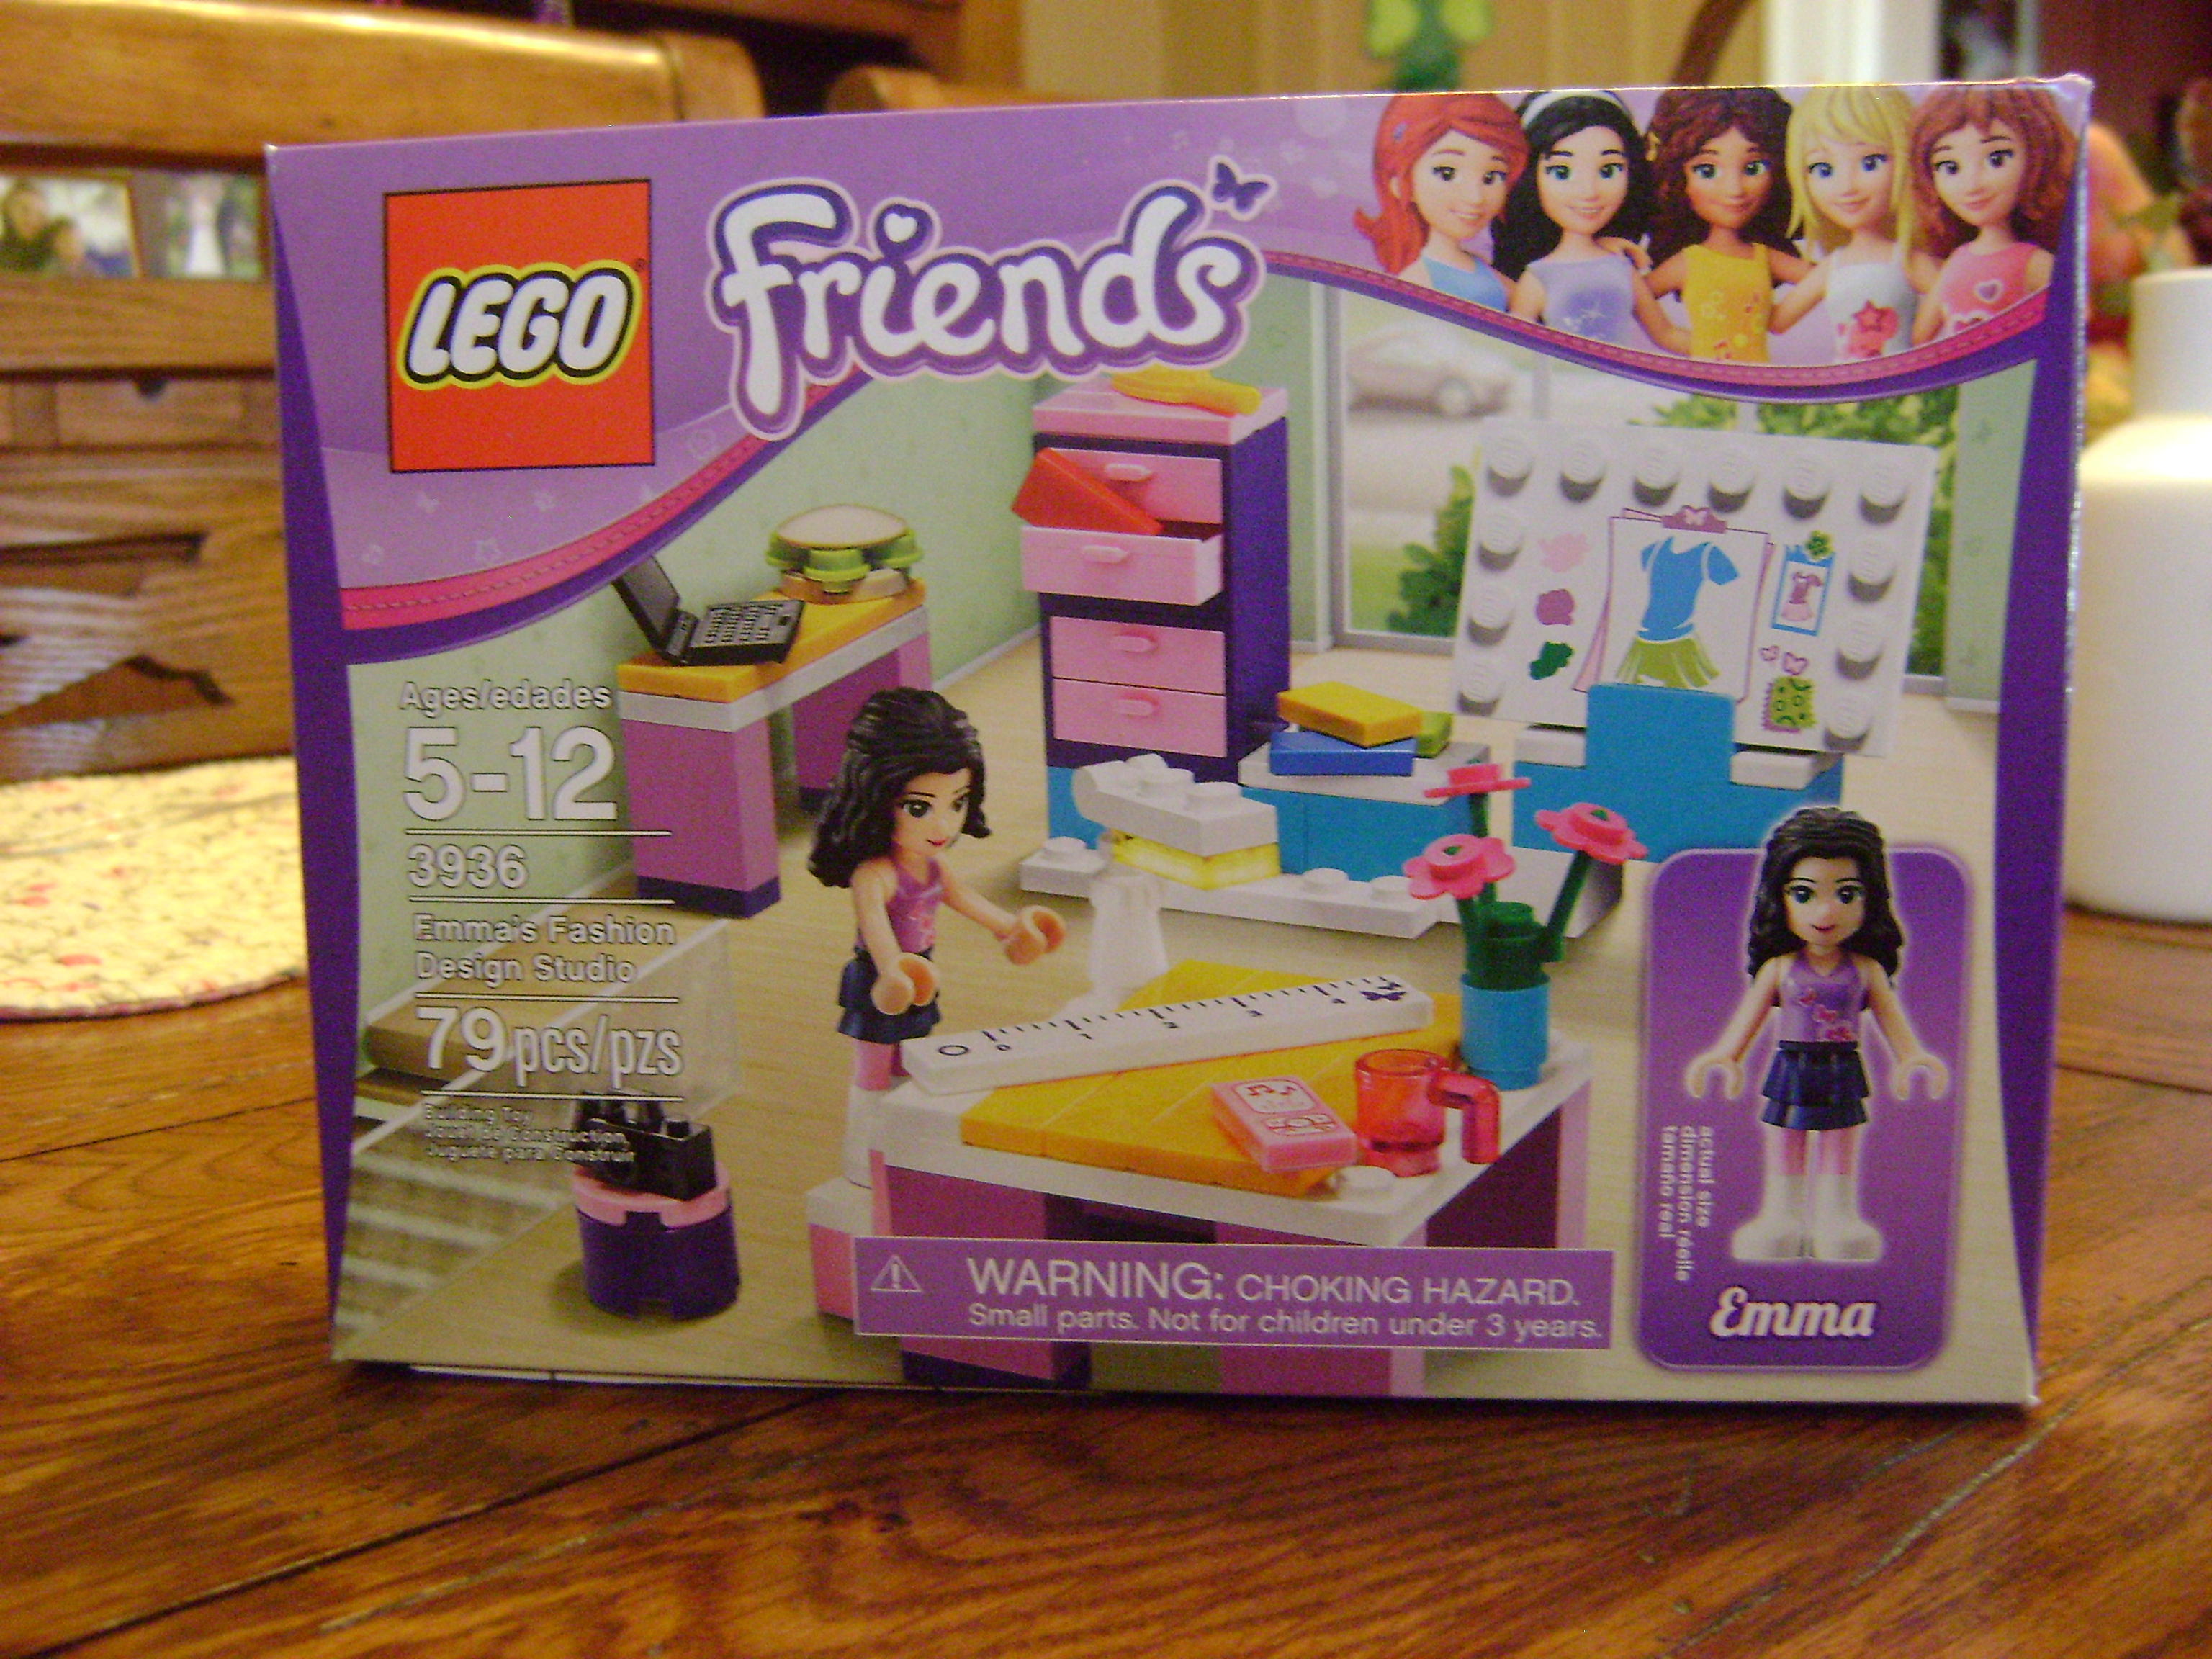 Toy review lego friends emma 39 s fashion design studio Crayola fashion design studio reviews